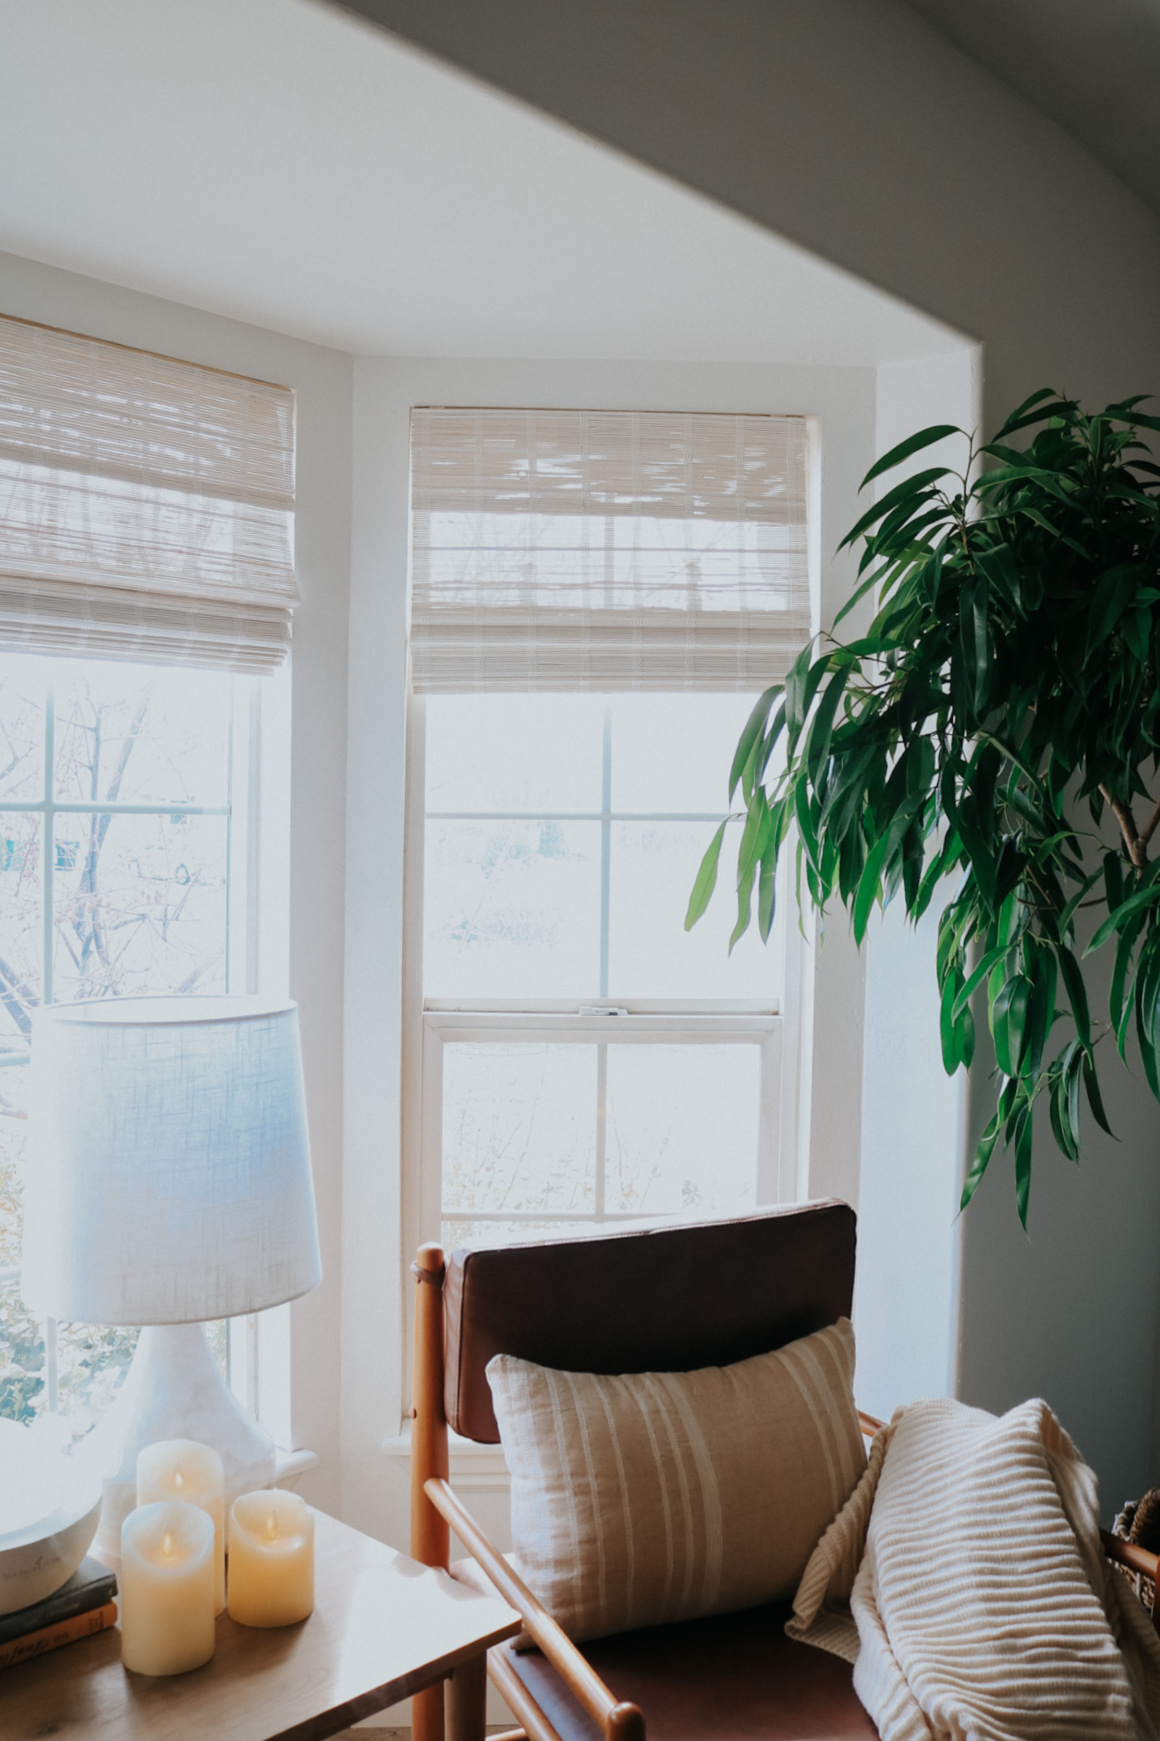 Living Room Affordable Refresh and Floor Lamps